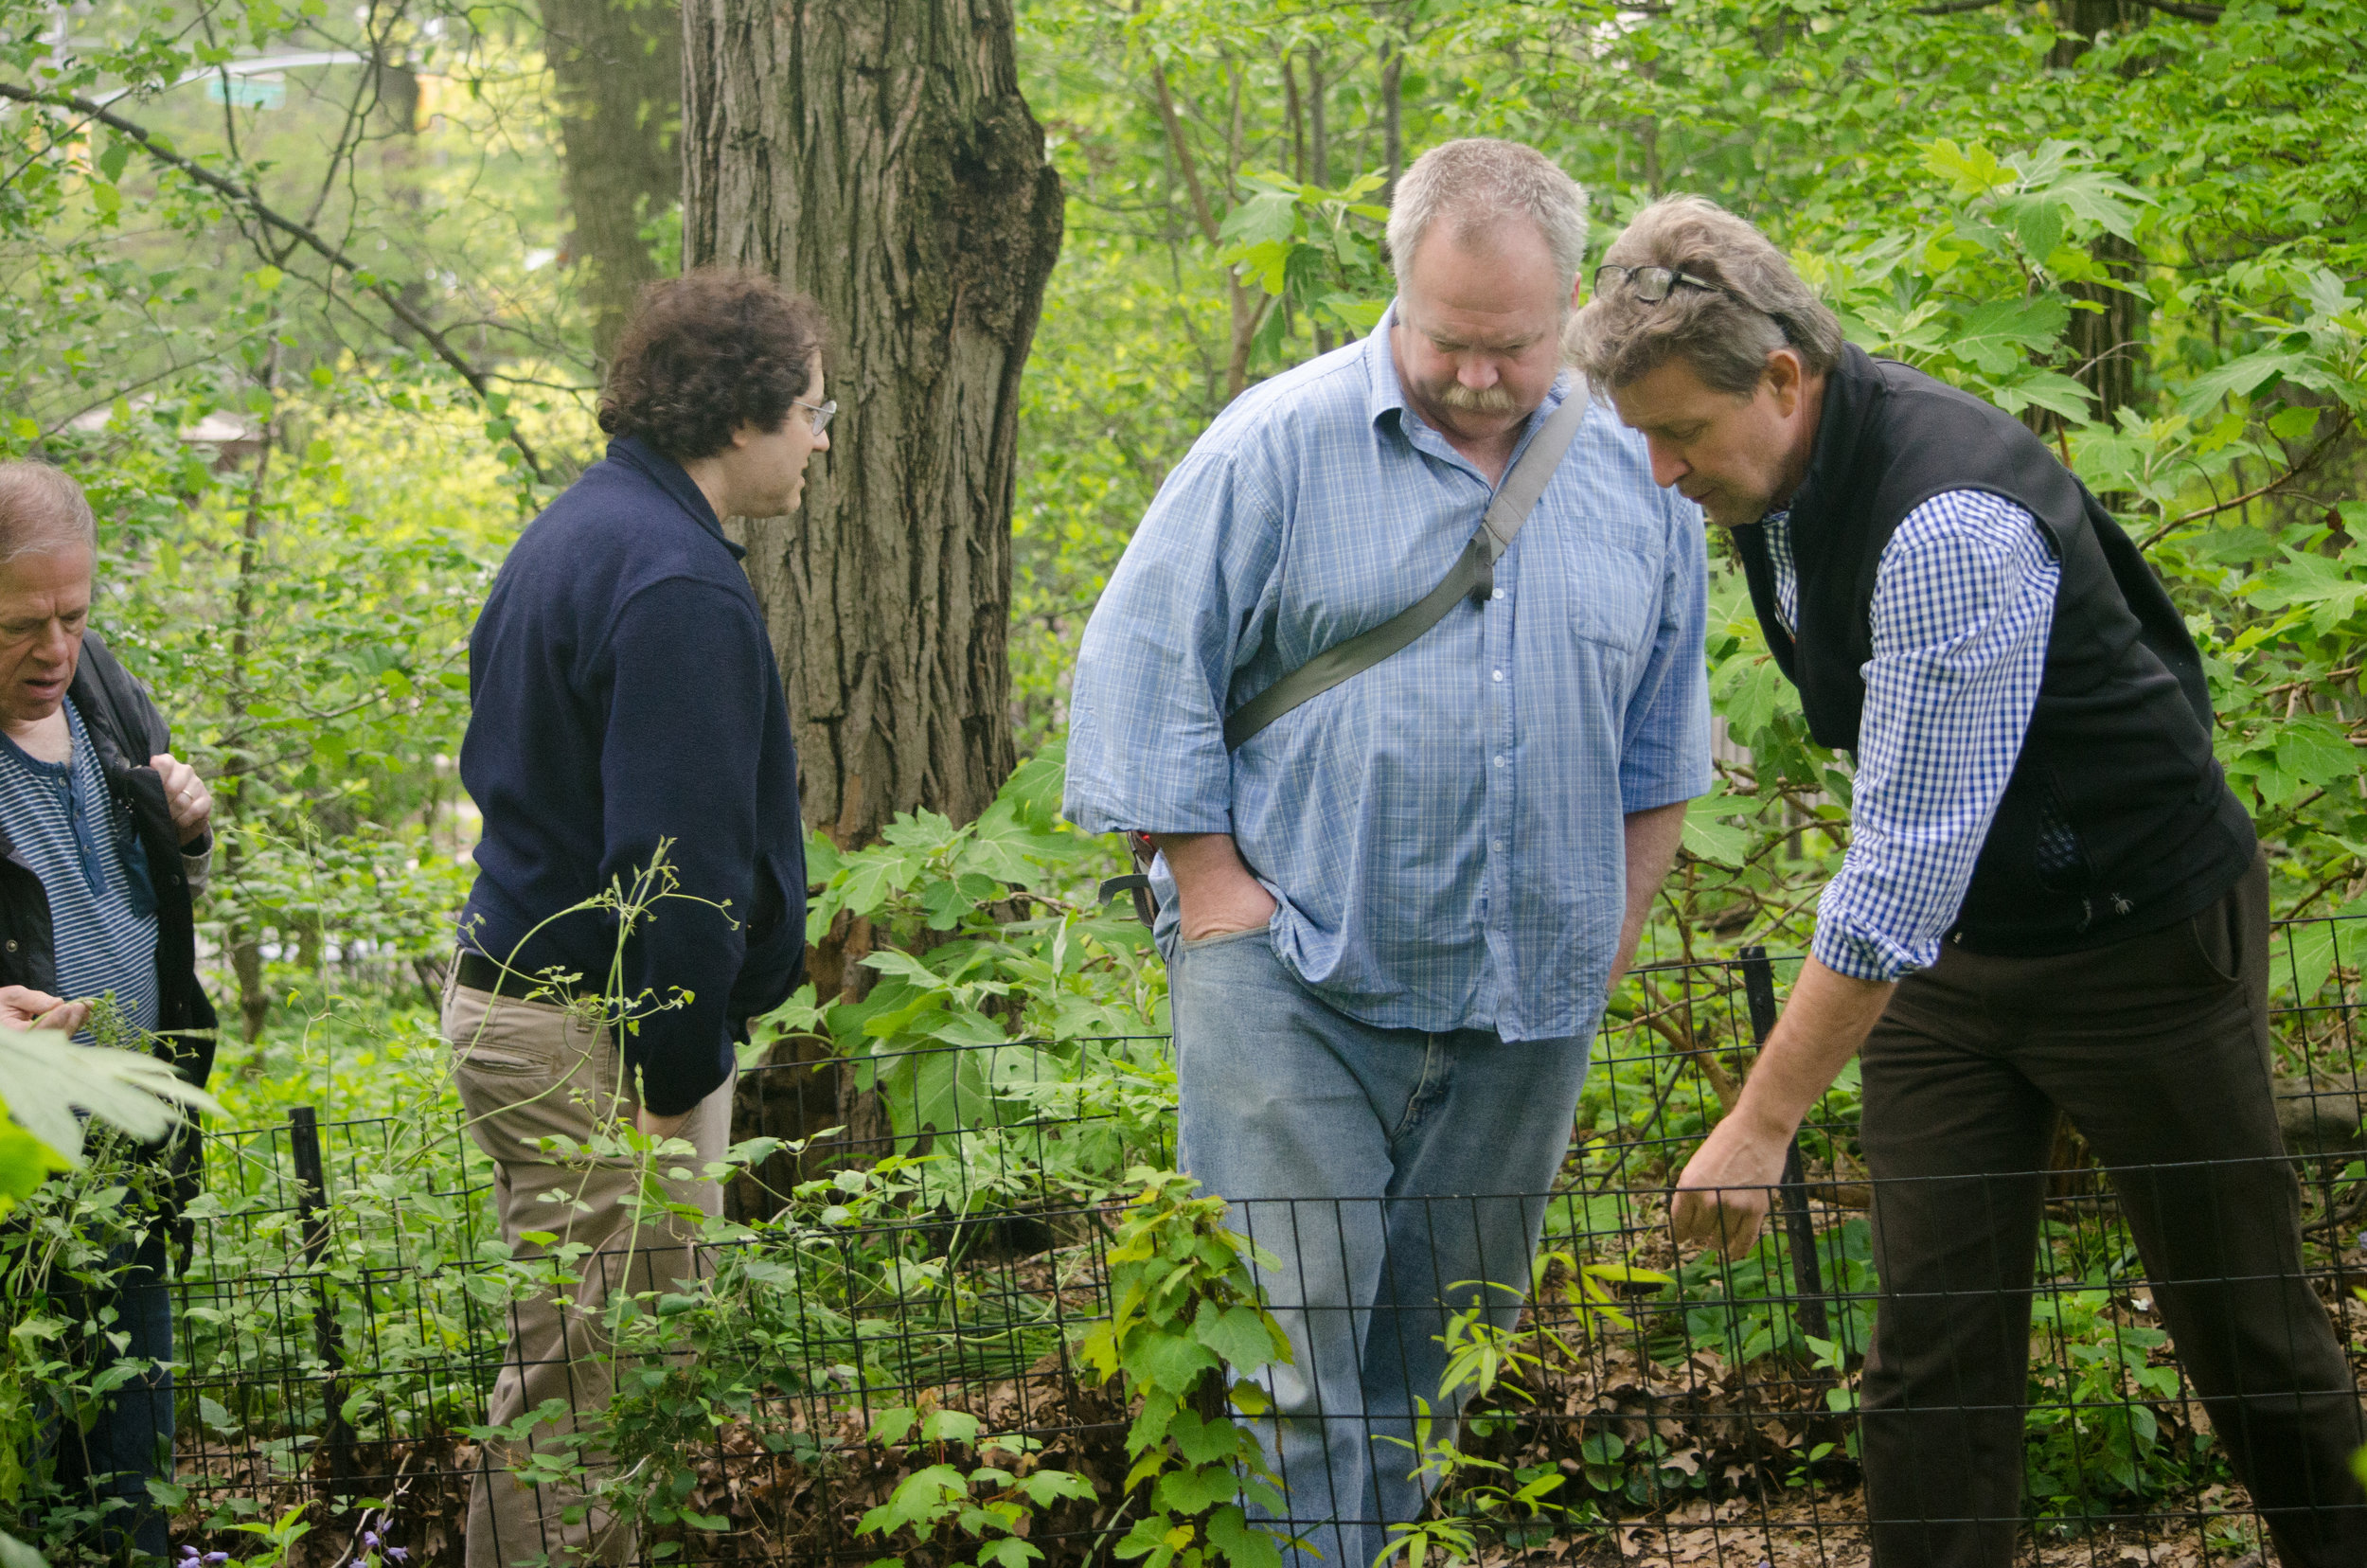 Botany Walk in Central Park with NYBG botanists - May 6